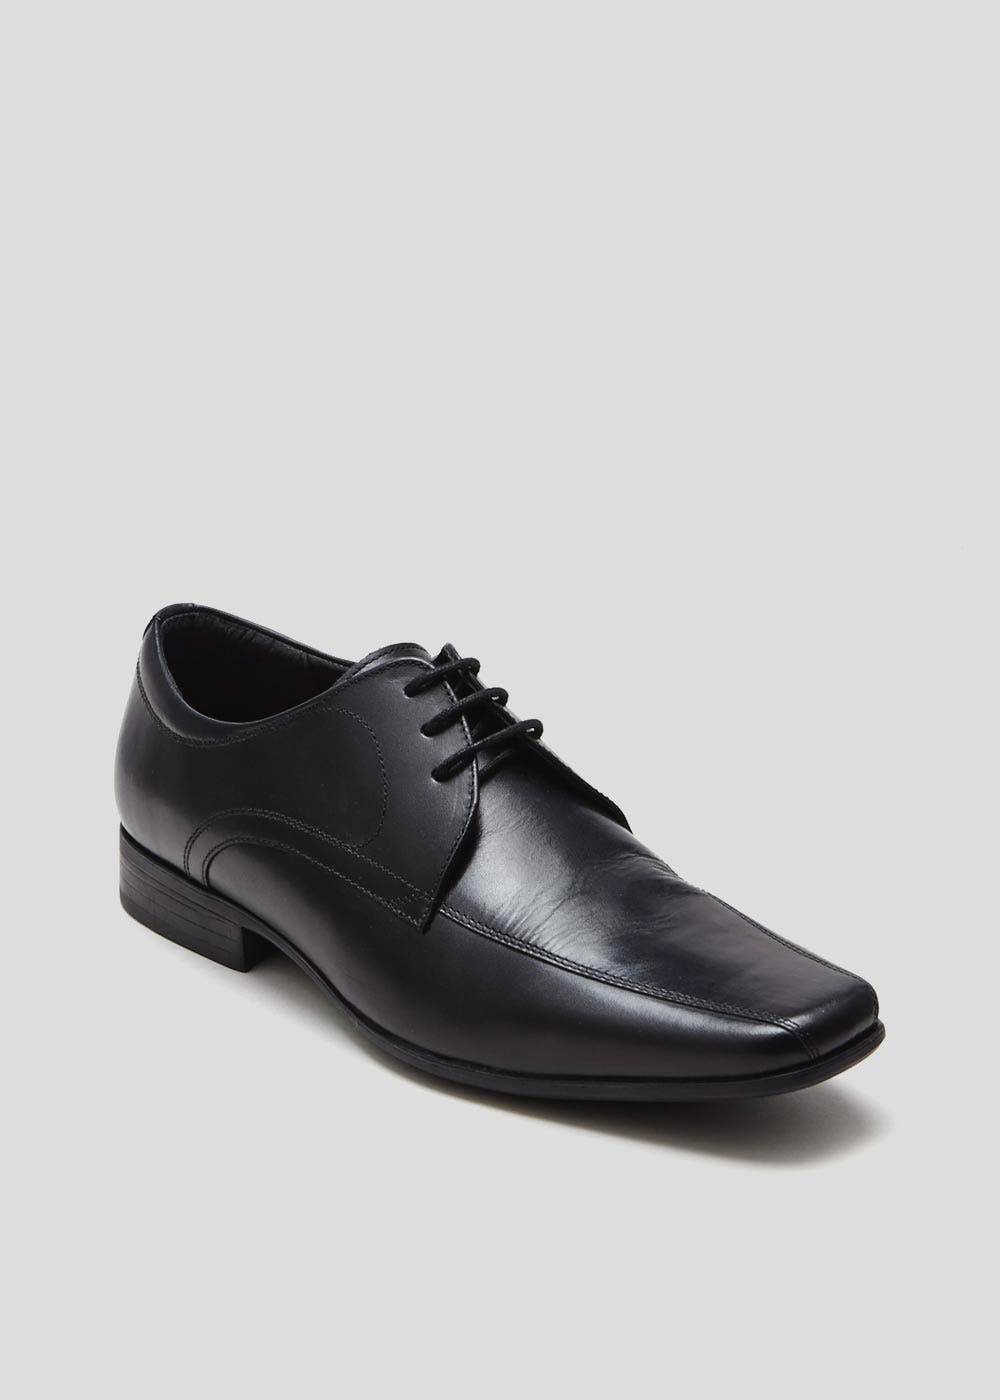 Shoe Shine Bench Part - 46: Taylor U0026 Wright Real Leather Lace Up Shoes